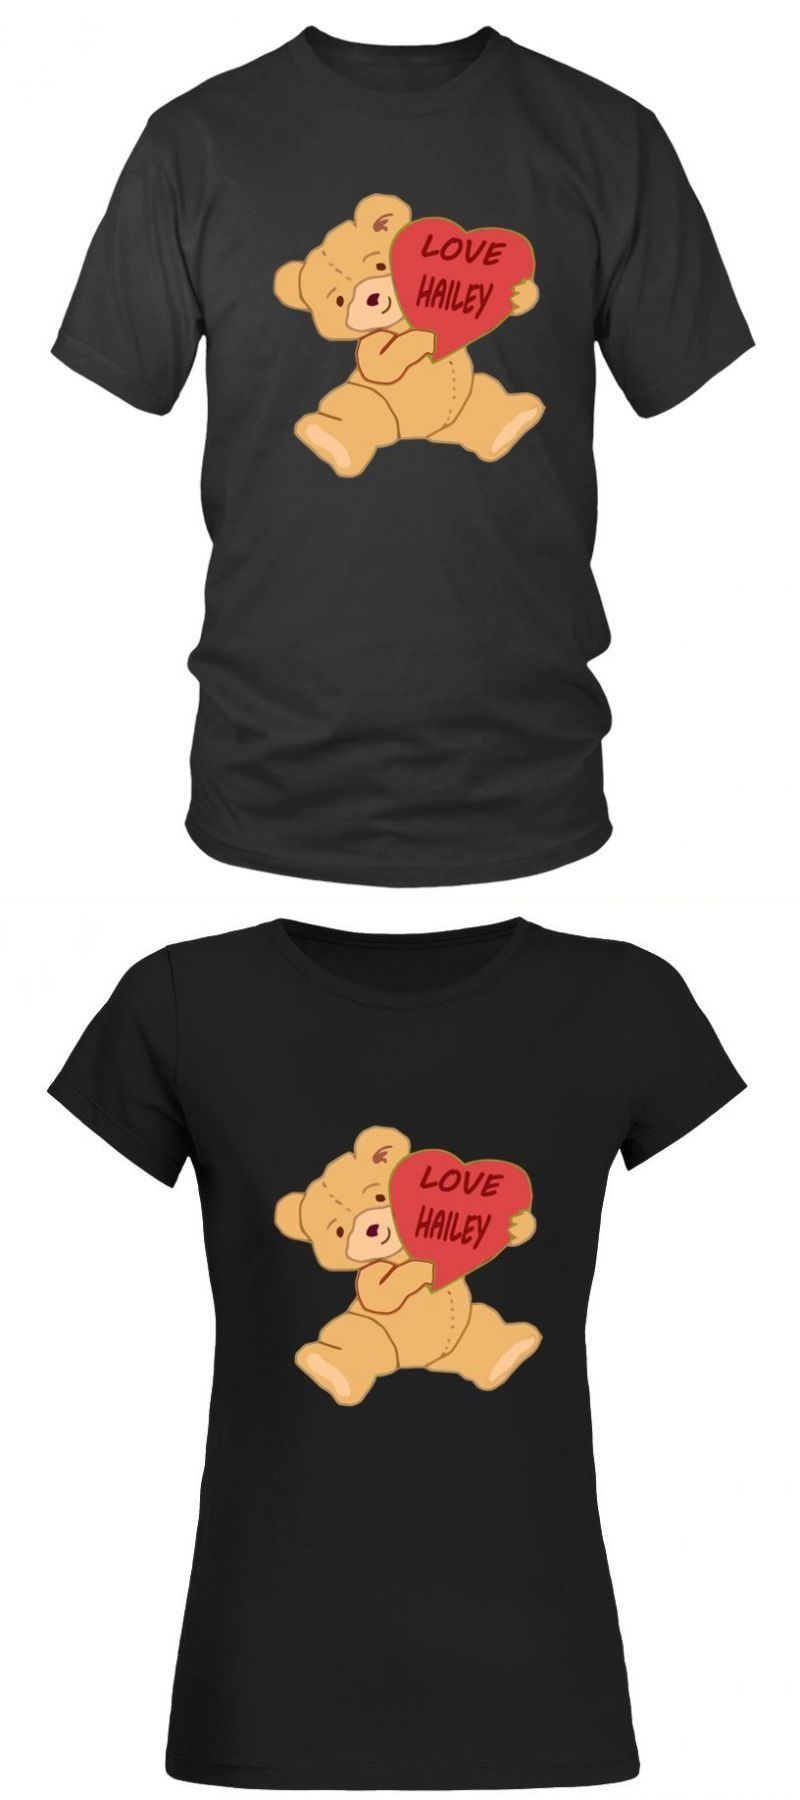 Halloween t-shirt target valentine and love hailey halloween t shirt craft #mamp;mcostumediy